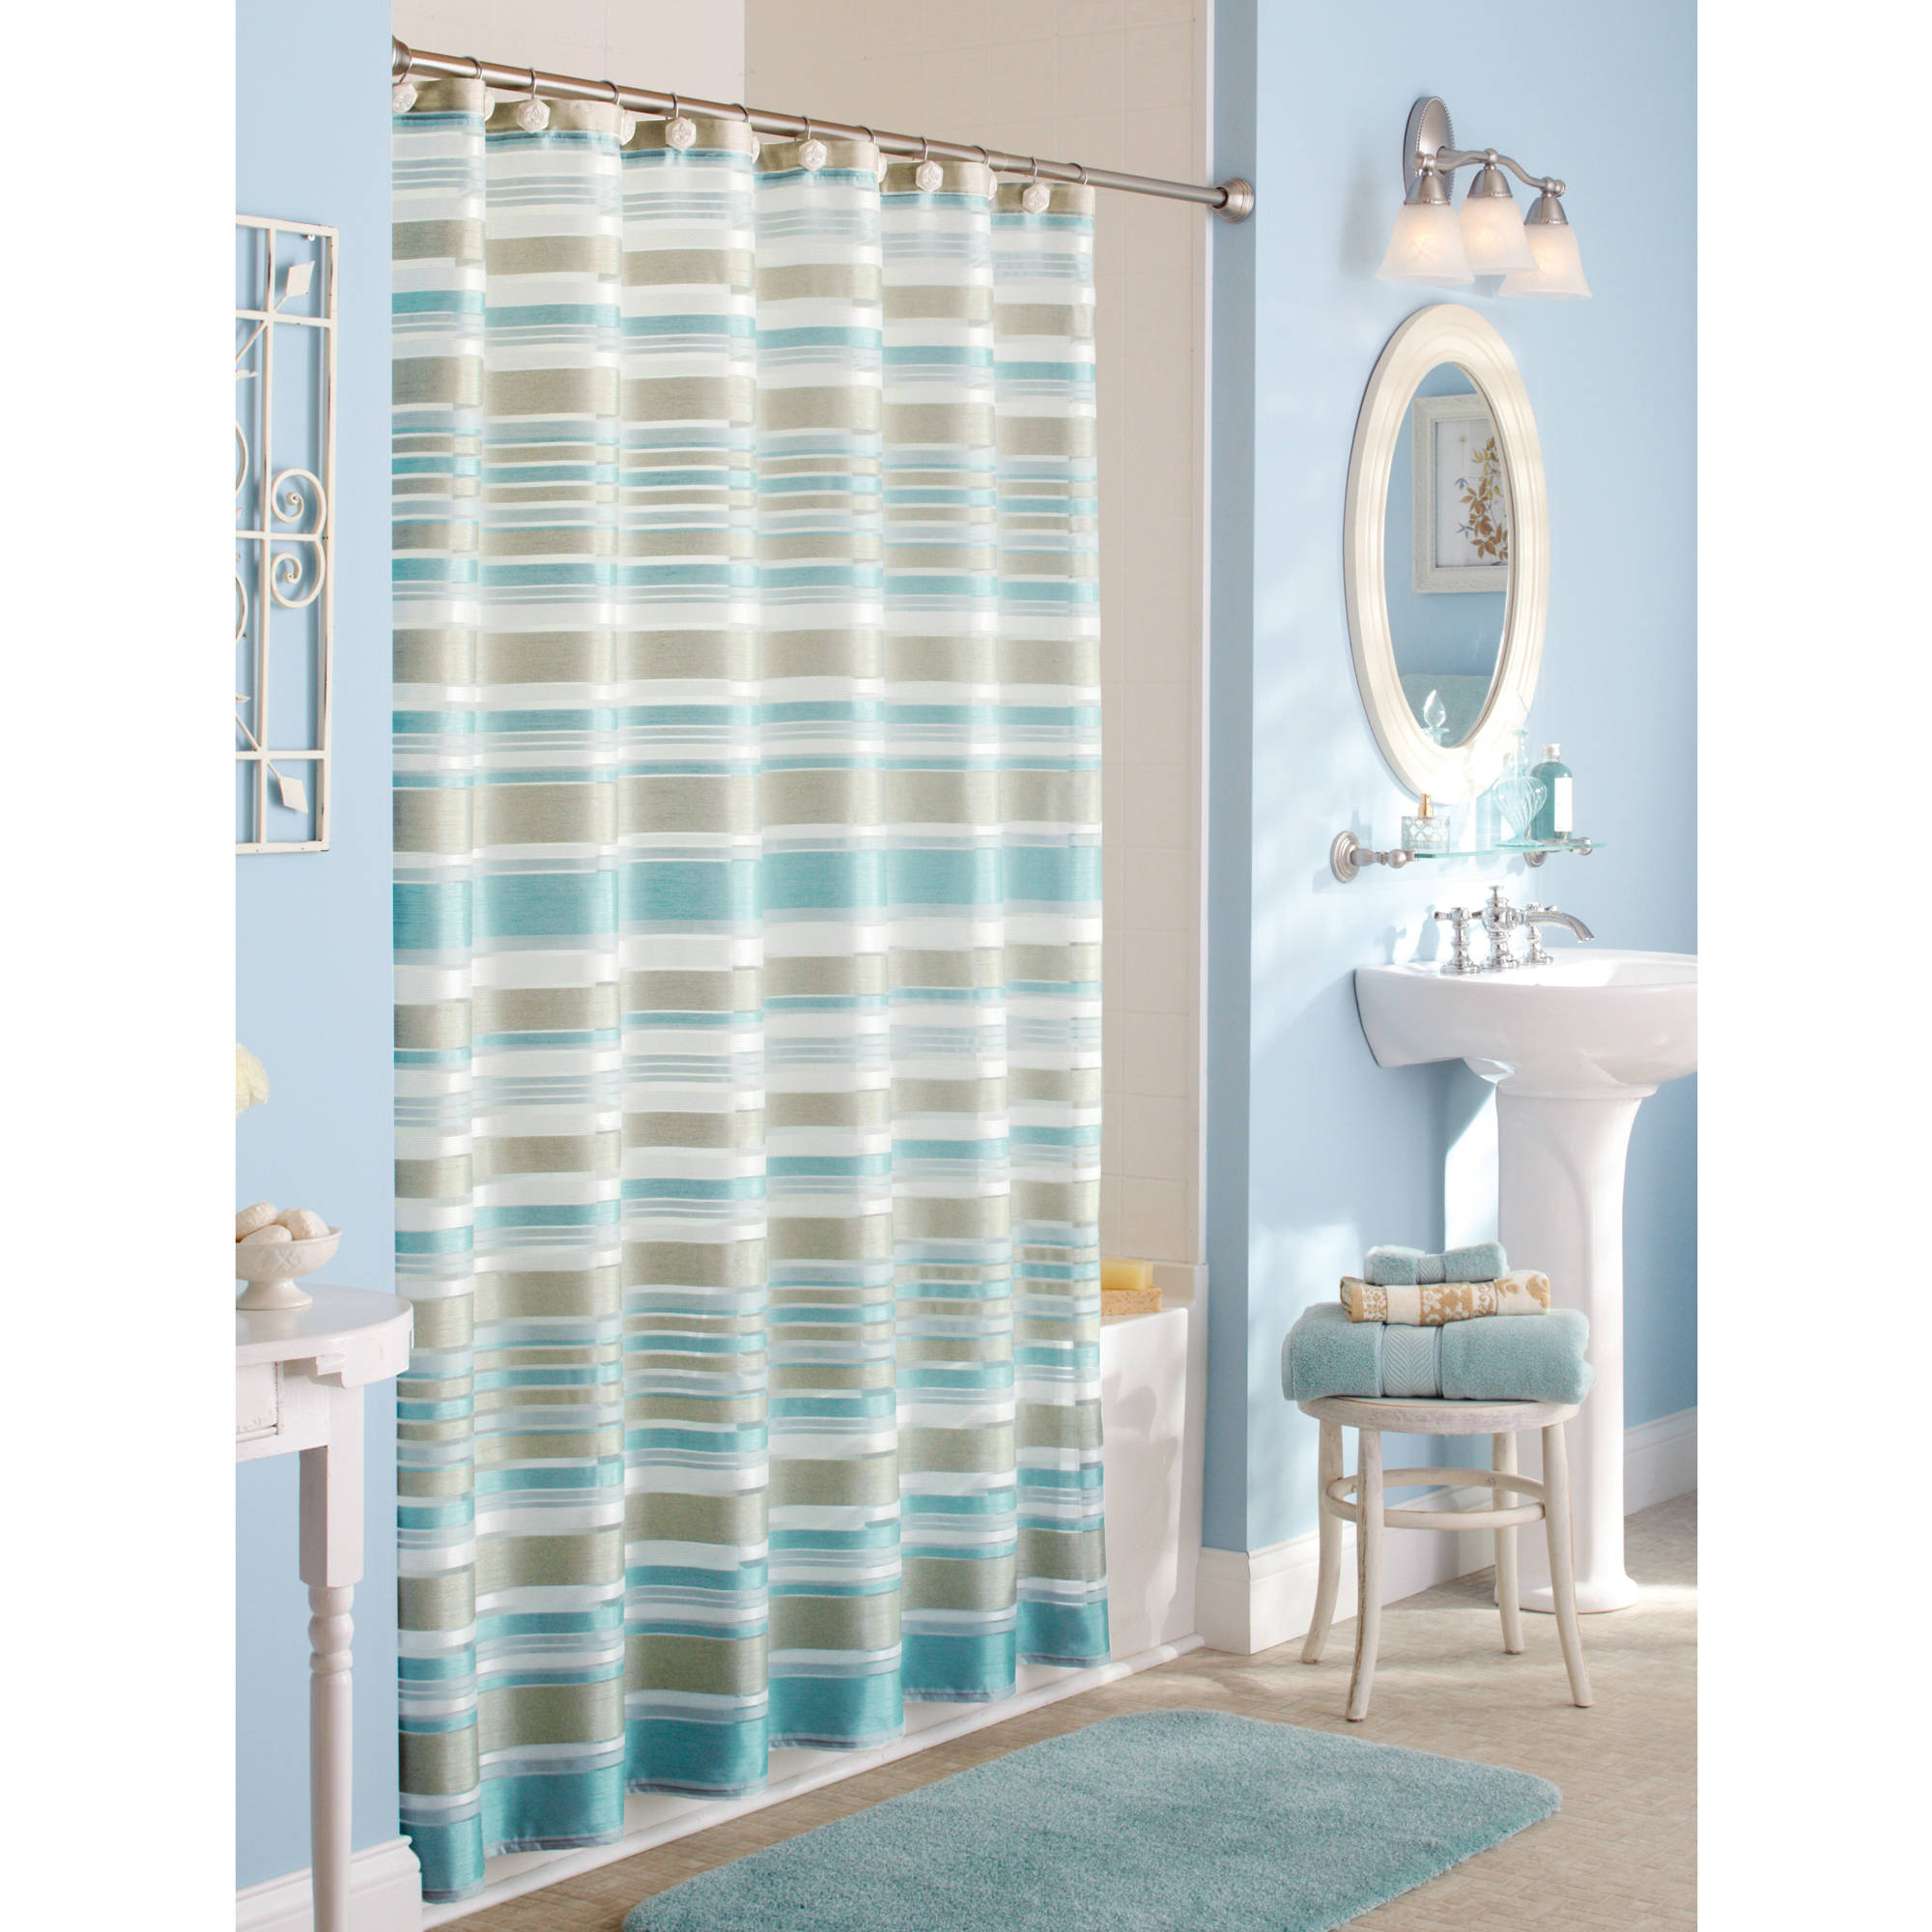 Grey White Striped Shower Curtain. Better Homes and Gardens Classic Stripe Fabric Shower Curtain  Walmart com